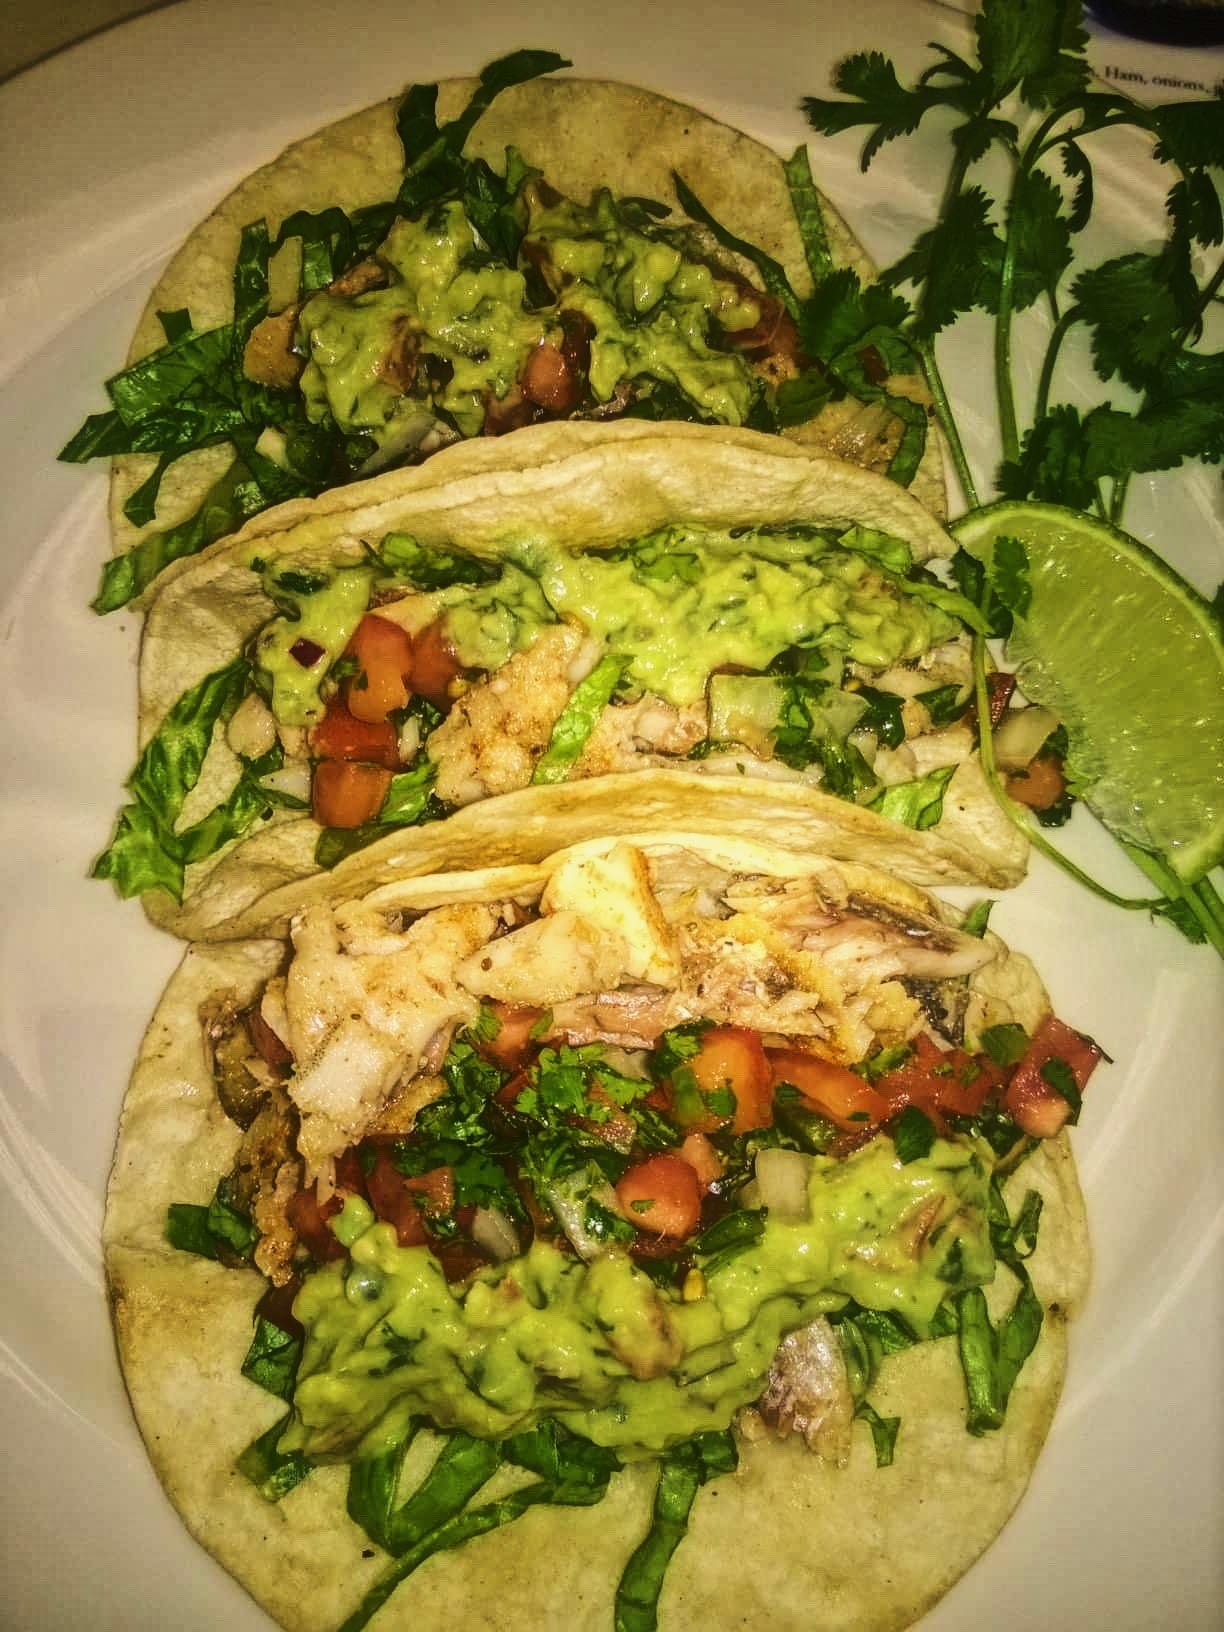 Delicious authentic chicken tacos